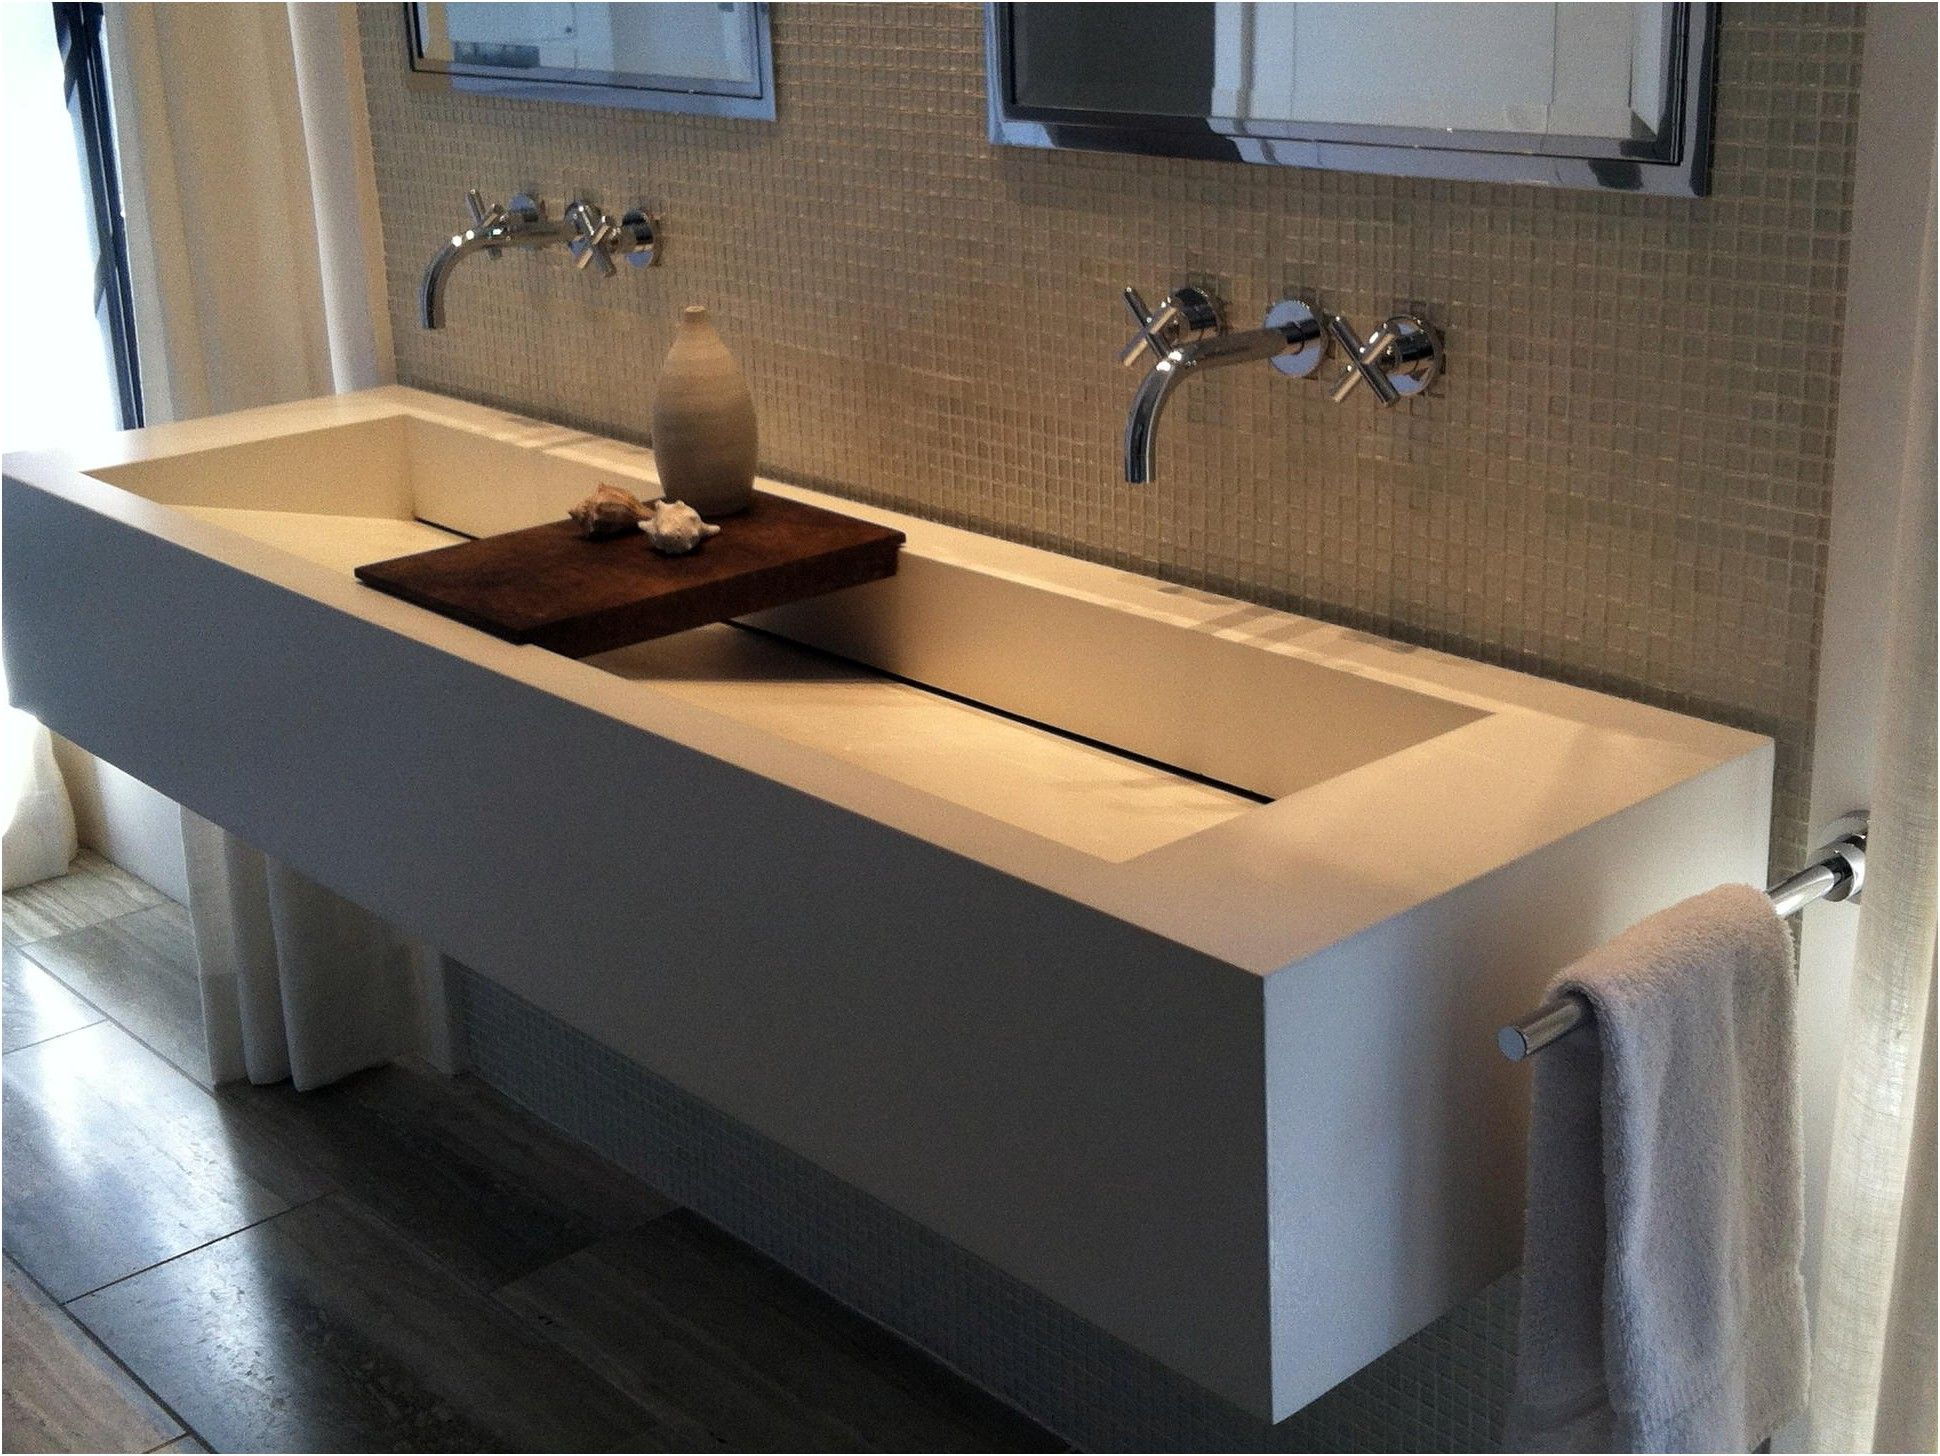 sophisticated white mercial trough sink with wooden soap dish from